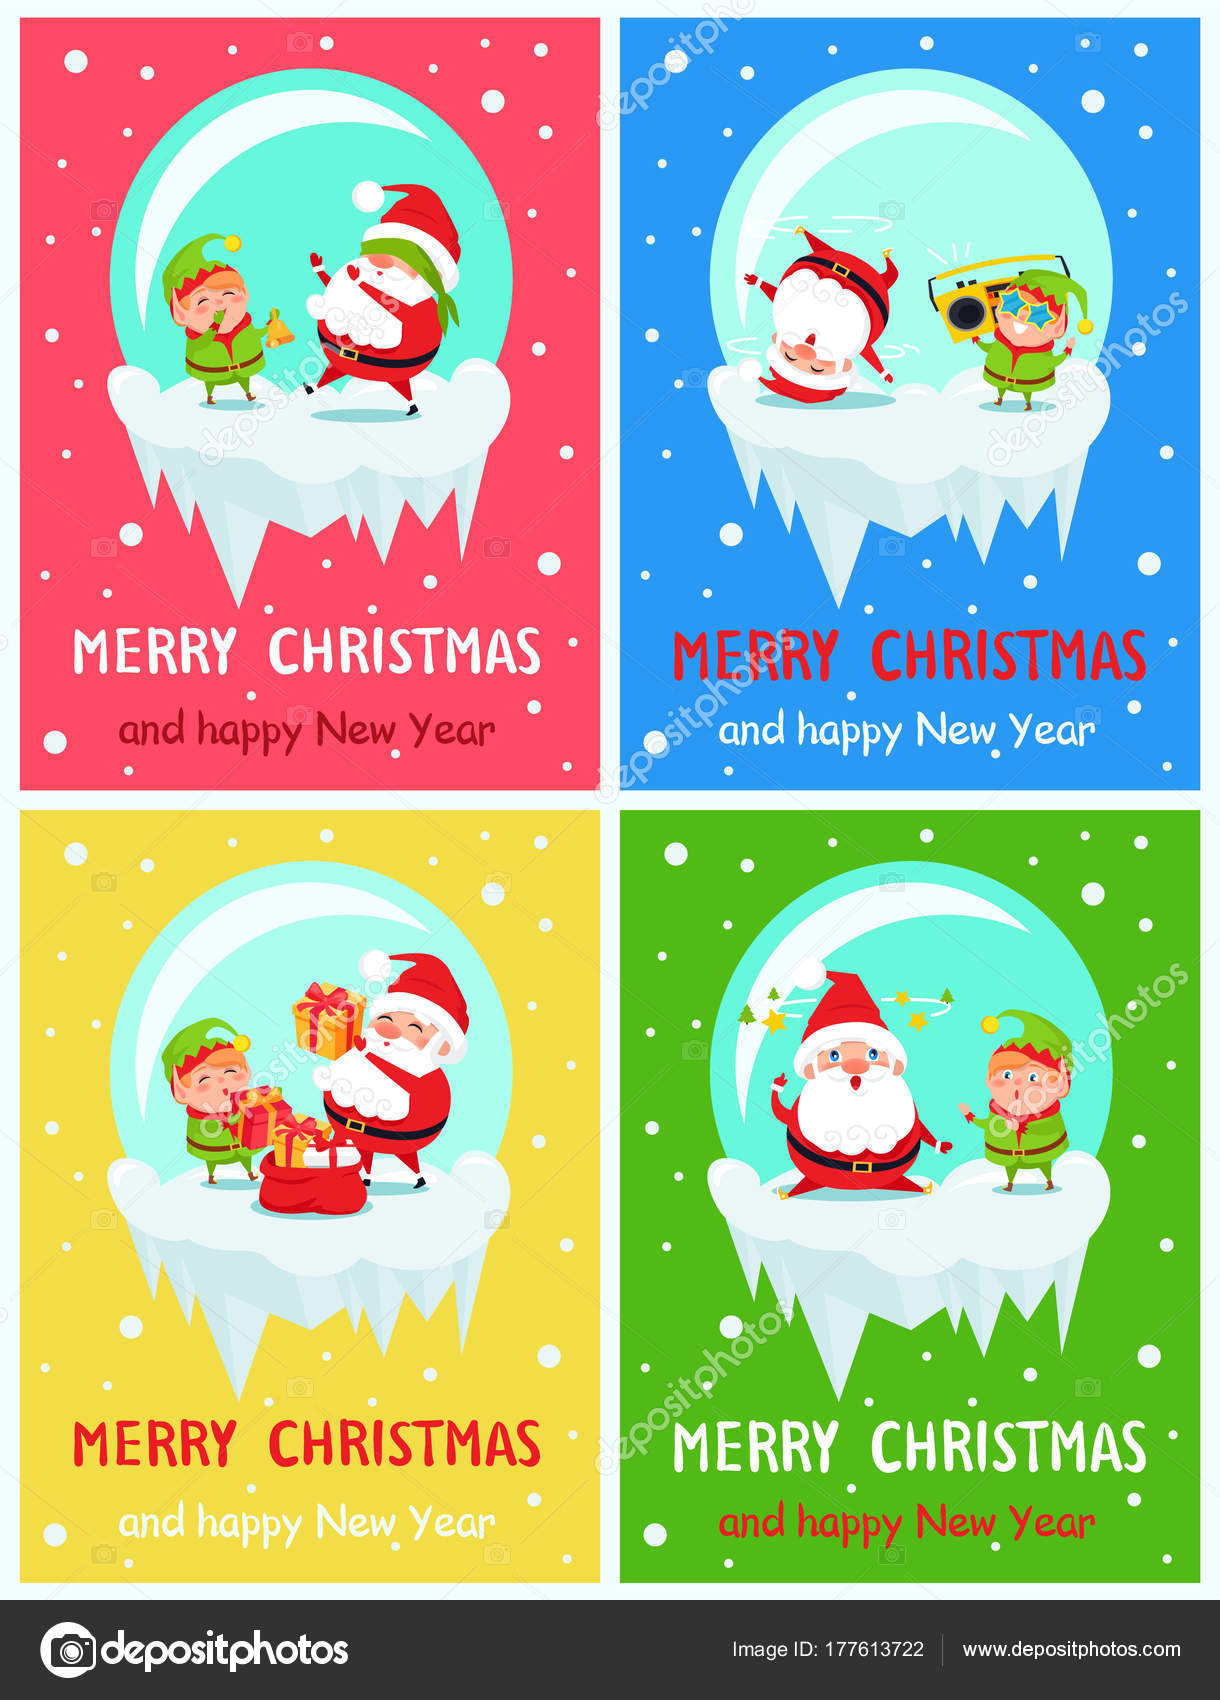 merry christmas happy new year poster santa elf stock vector